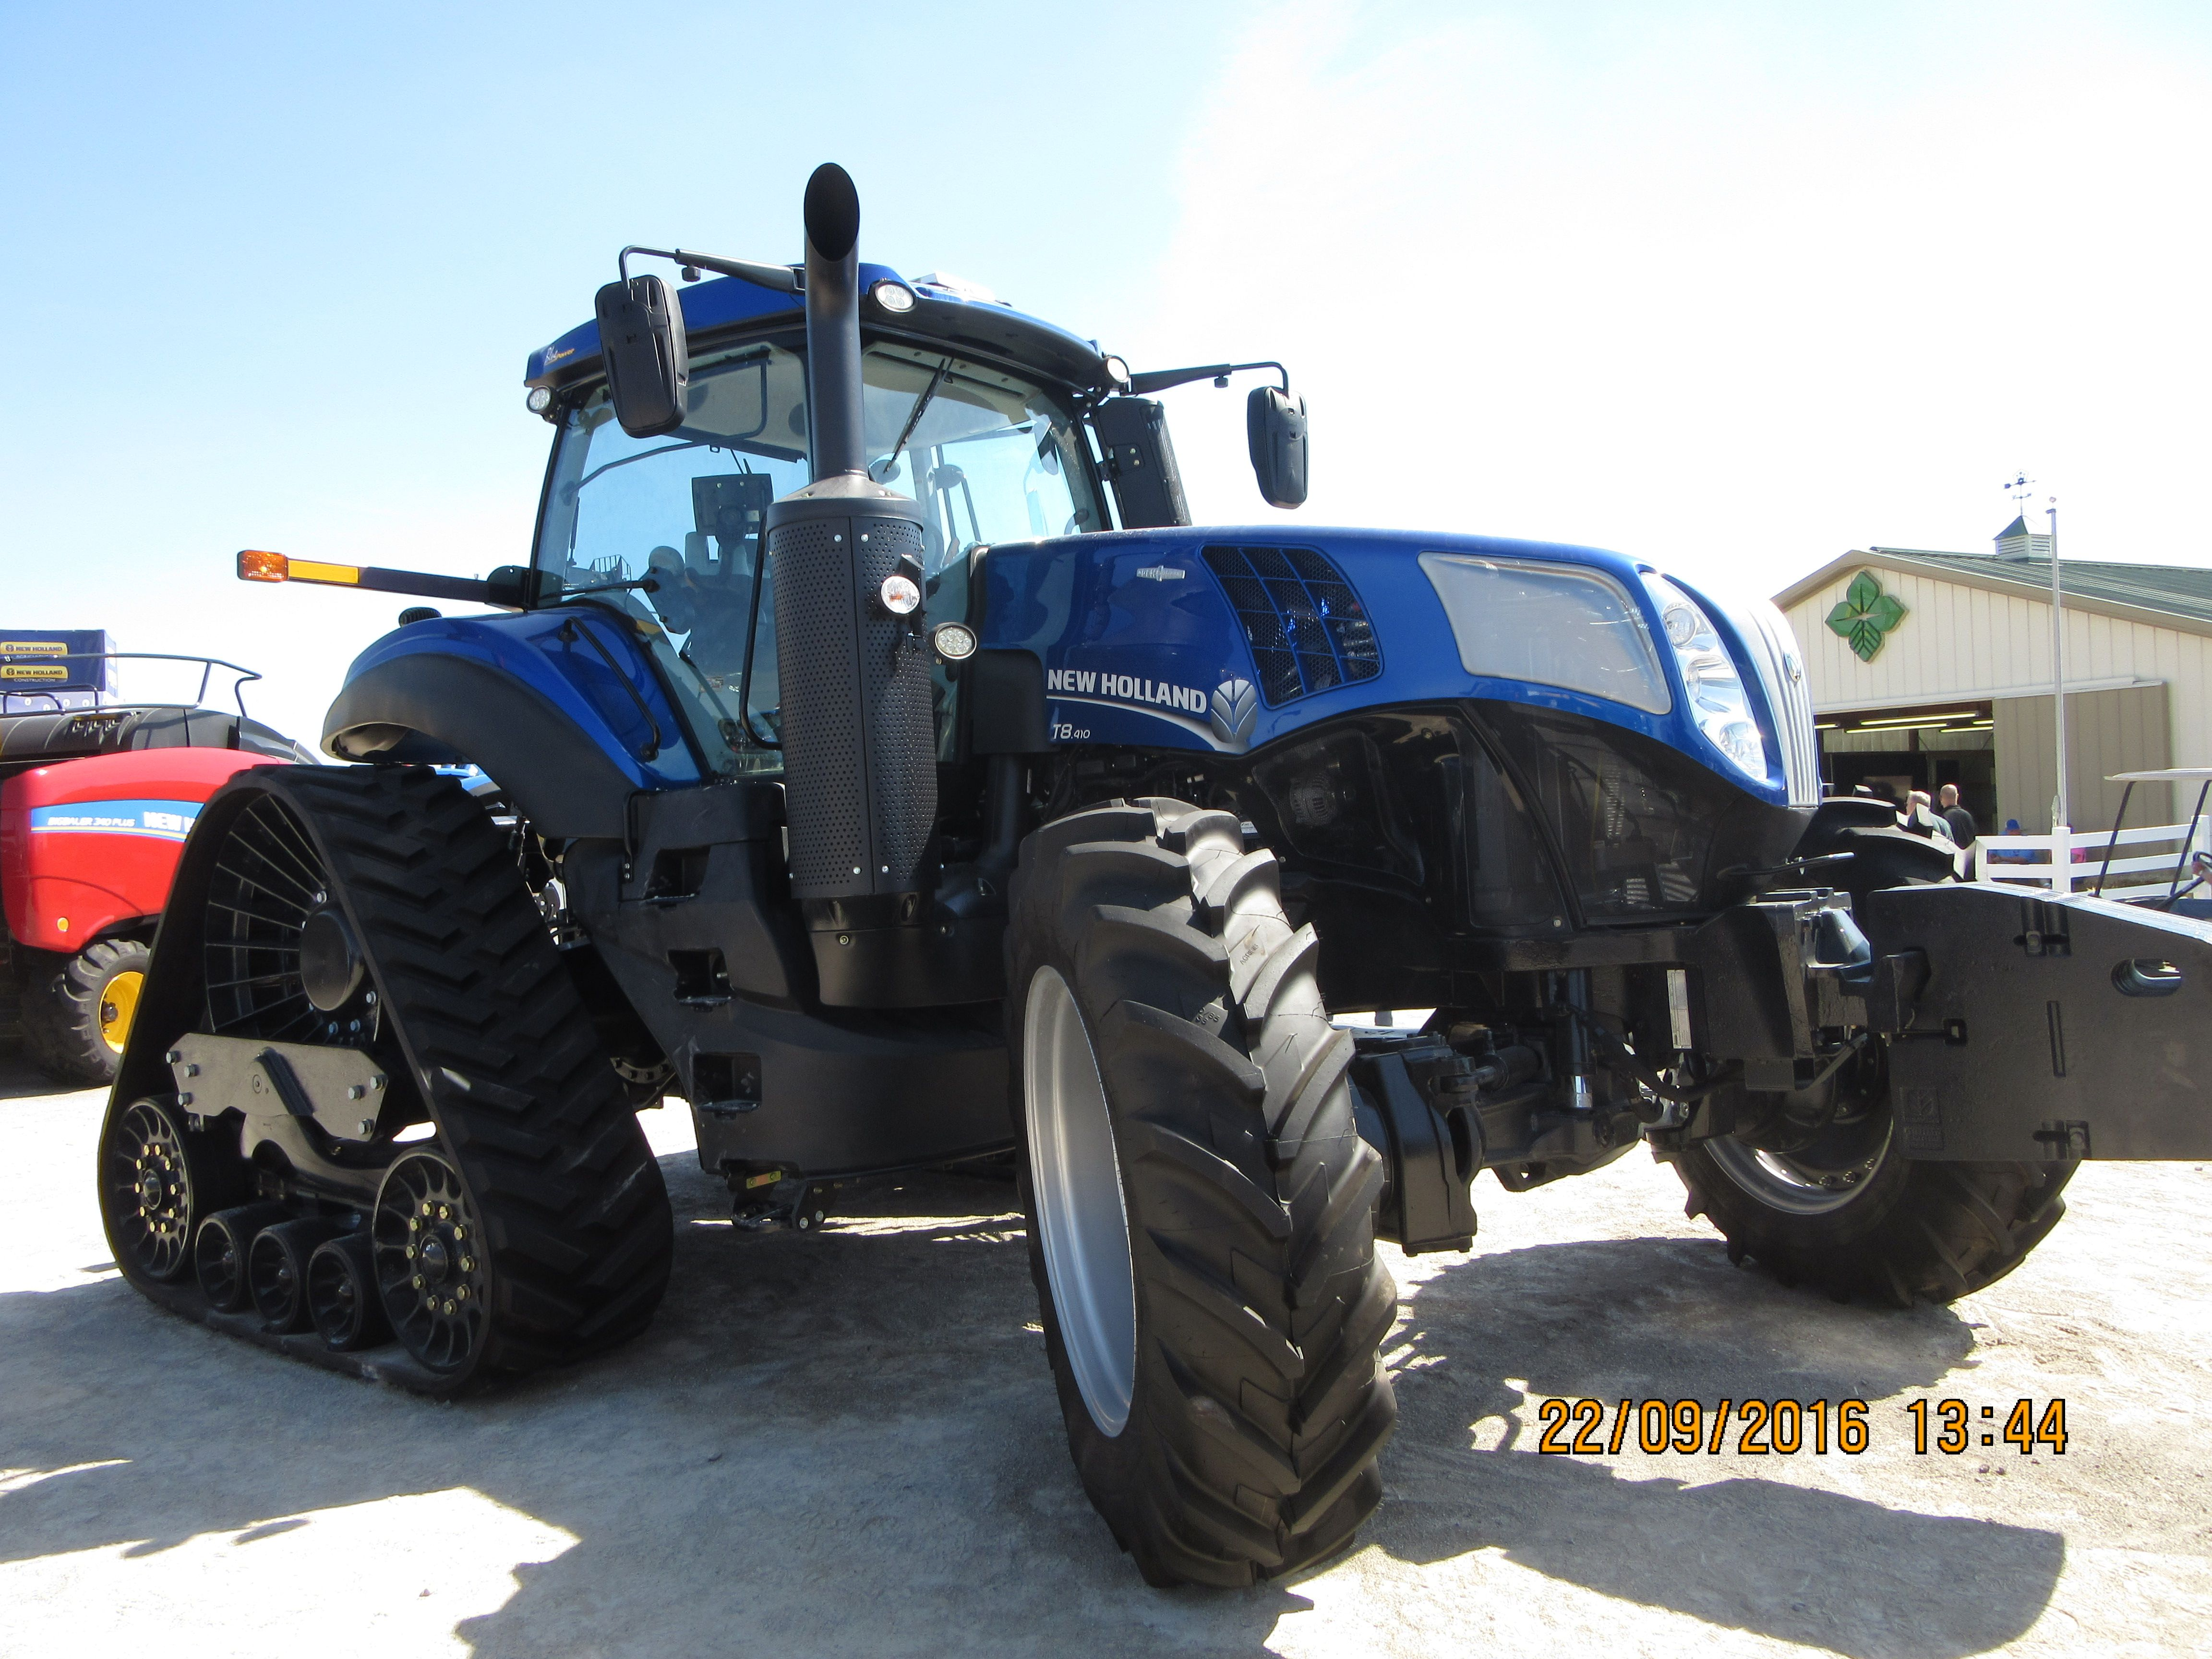 New Holland T8 410 Smart Trax New Holland Agriculture New Holland Tractors